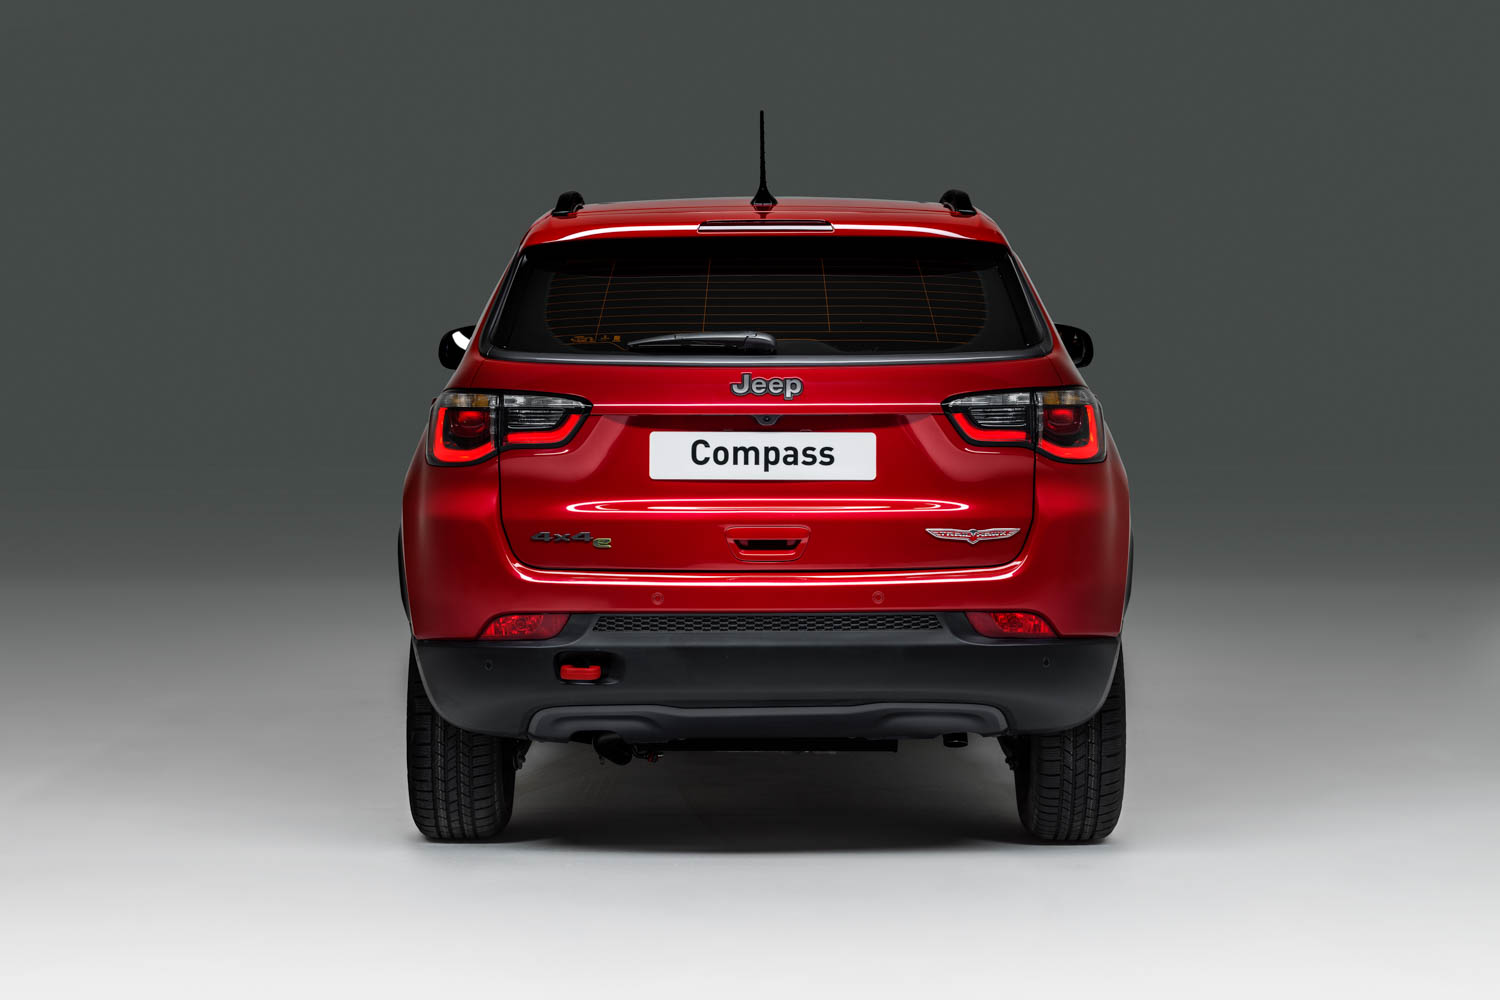 Jeep Compass Plug-in Hybrid rear